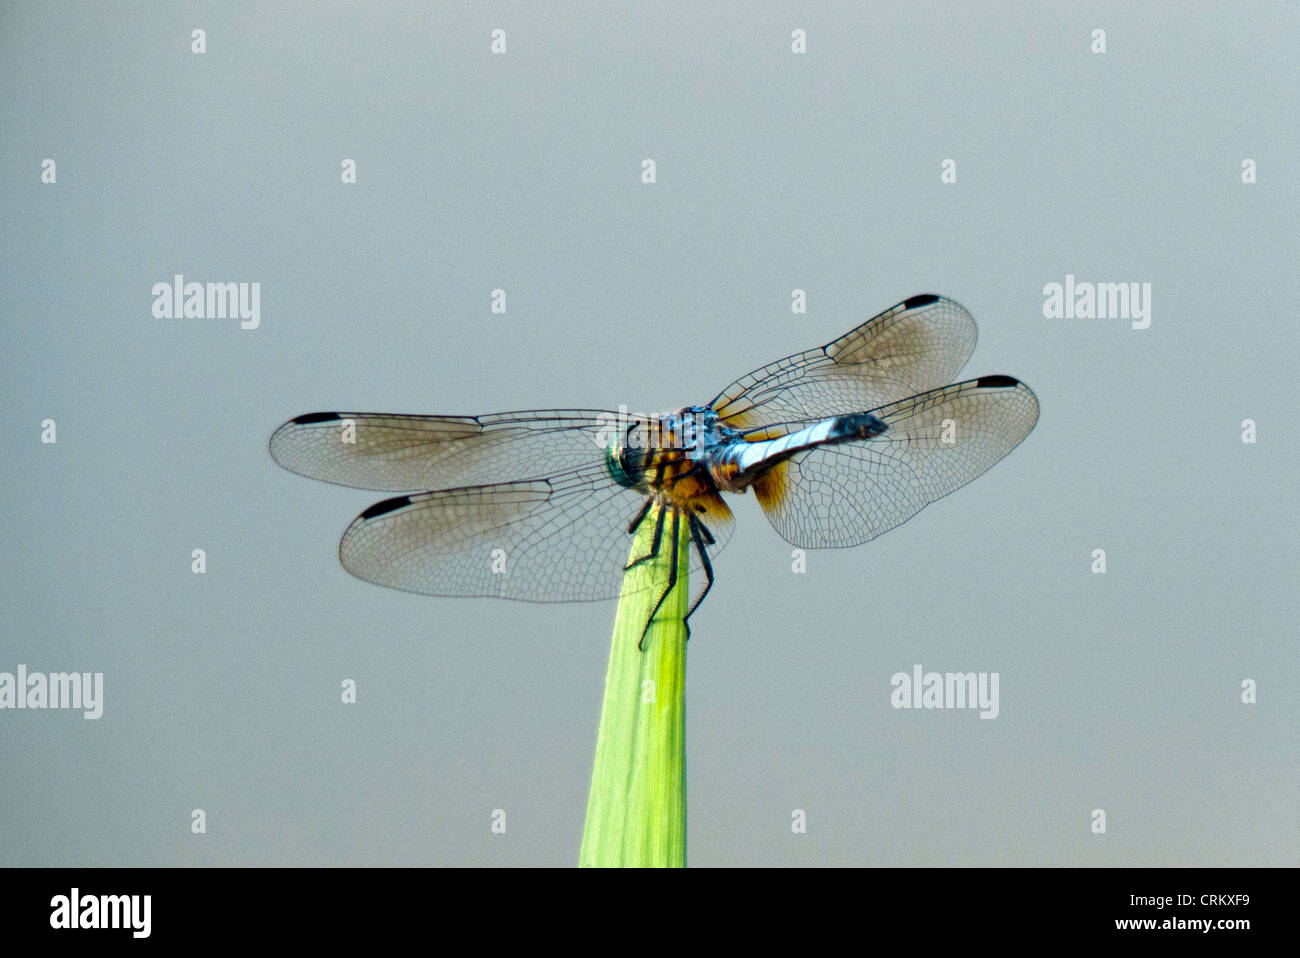 Blue dragonfly perched on blade of grass in a pond, Missouri USA - Stock Image